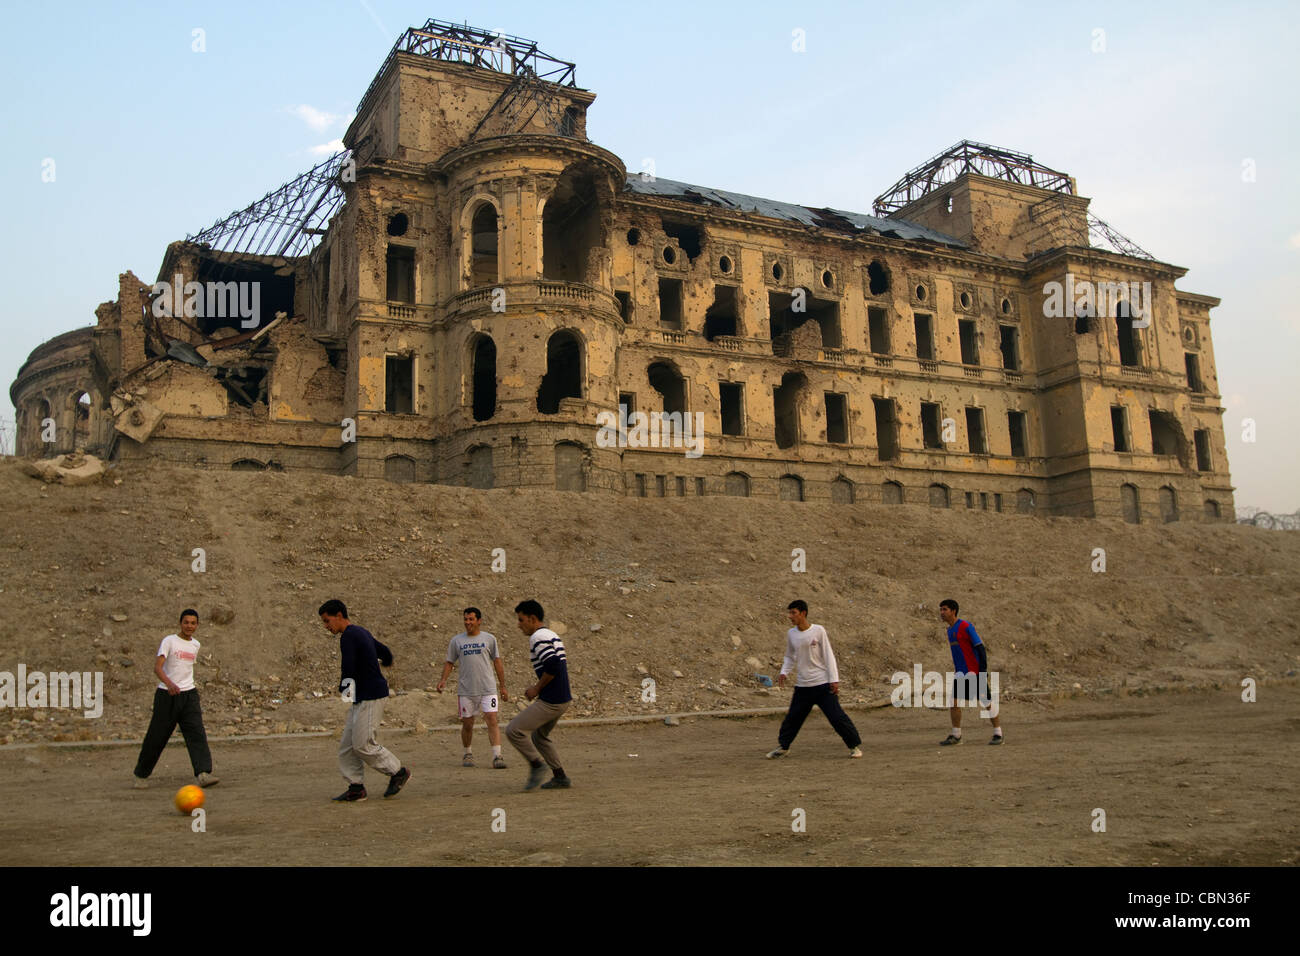 Afghans playing soccer in front of Darul Aman Palace ruined in 1992 Civil War Kabul Afghanistan - Stock Image